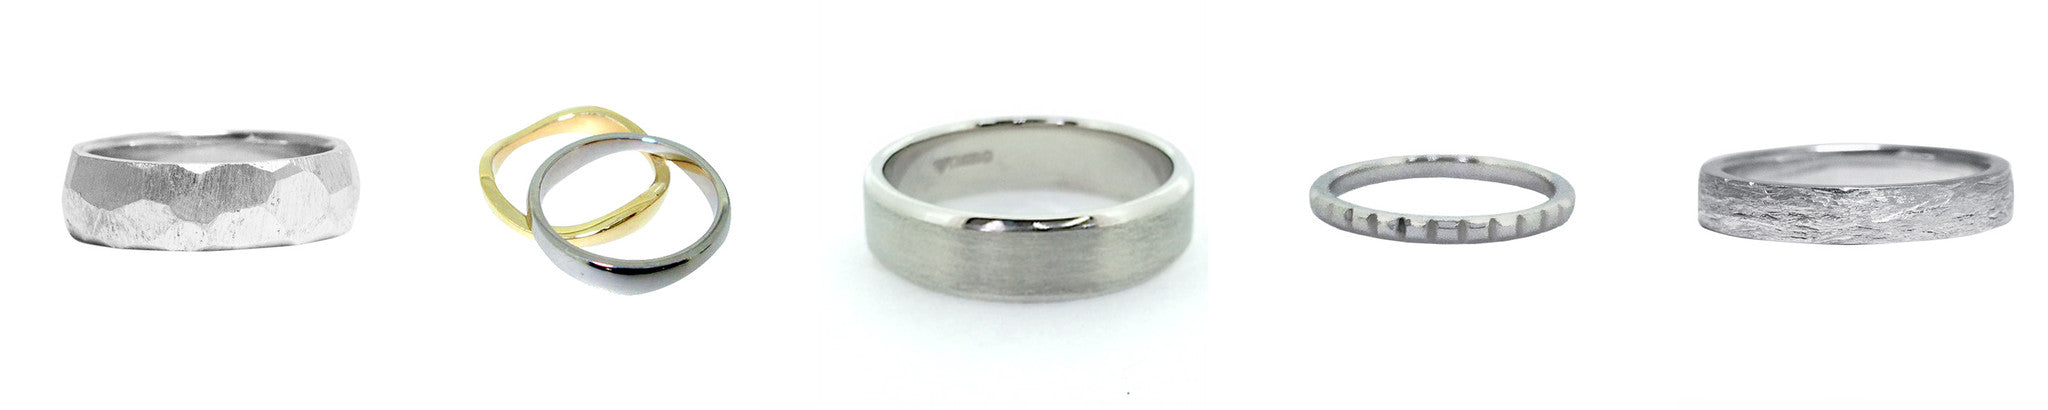 Bespoke image gallery of handmade wedding rings